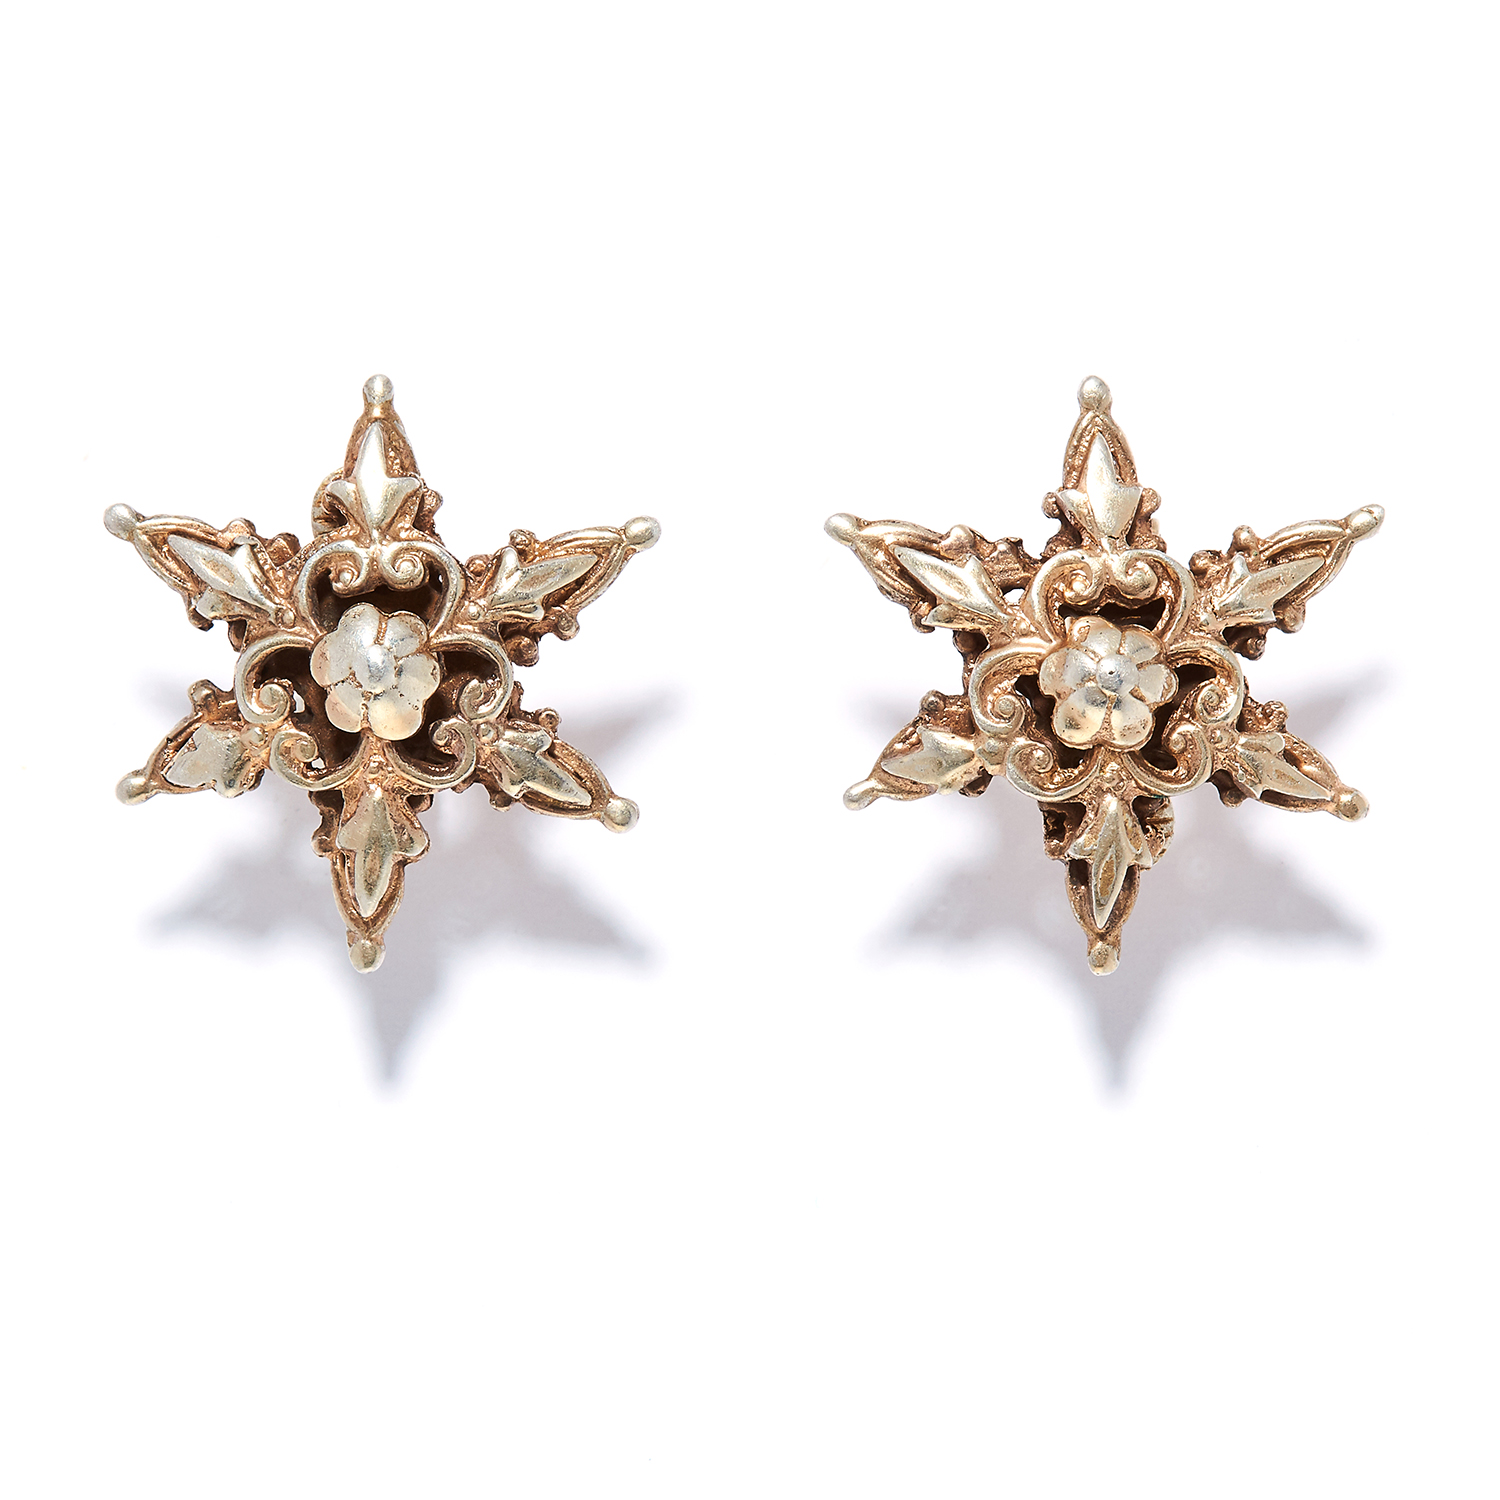 A PAIR OF SILVER EARRINGS in sterling silver, in star design, decorated with foliate motifs,